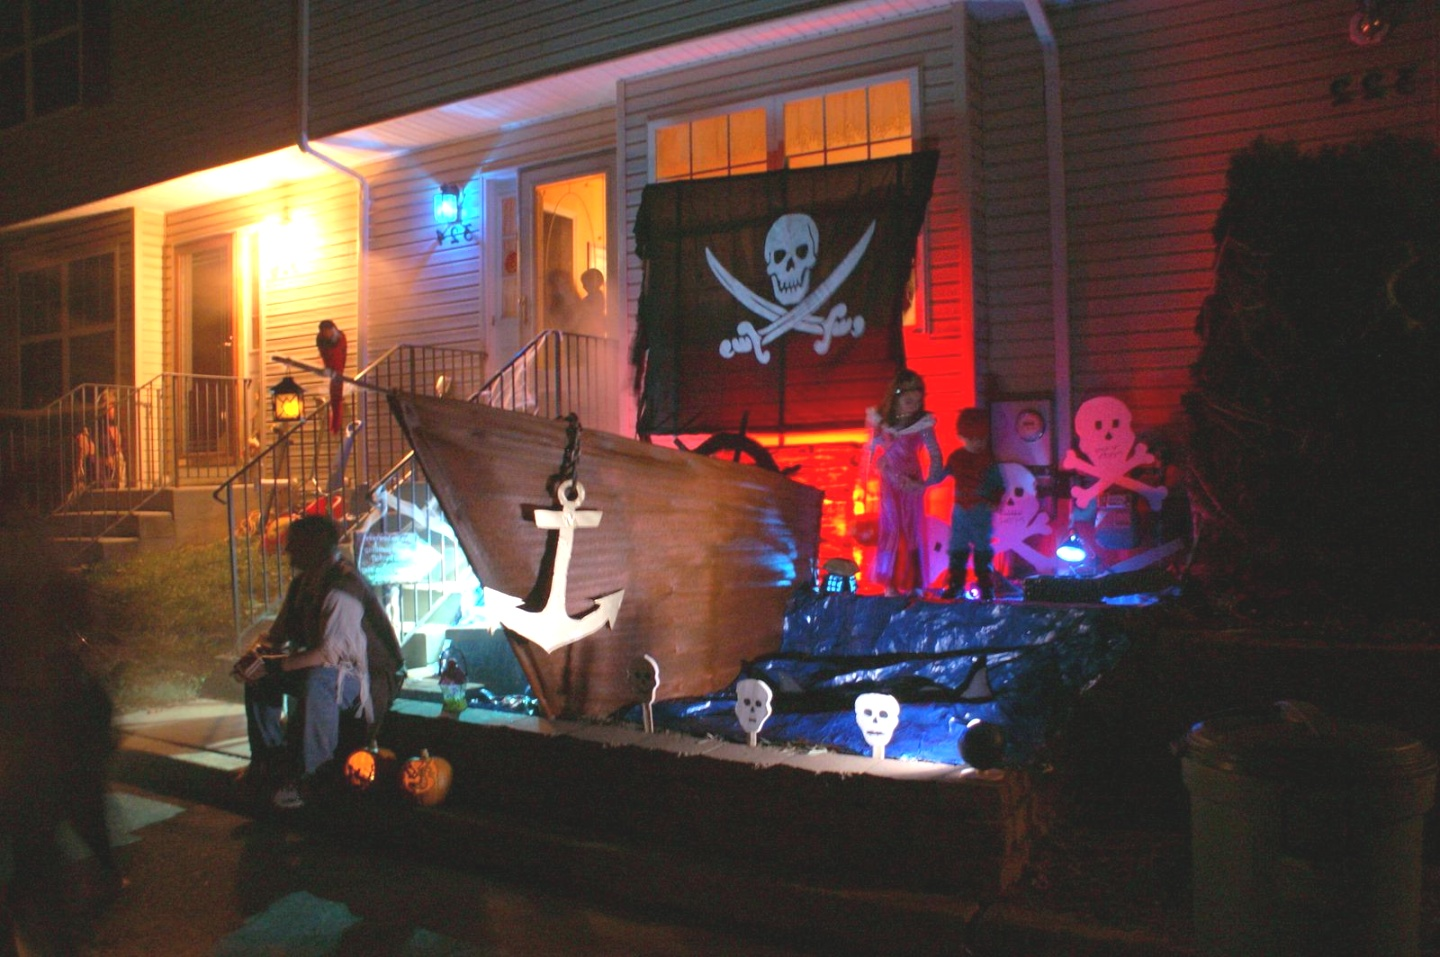 pirate themed halloween decorations | Pirate Halloween Decorations creative halloween decorations ..